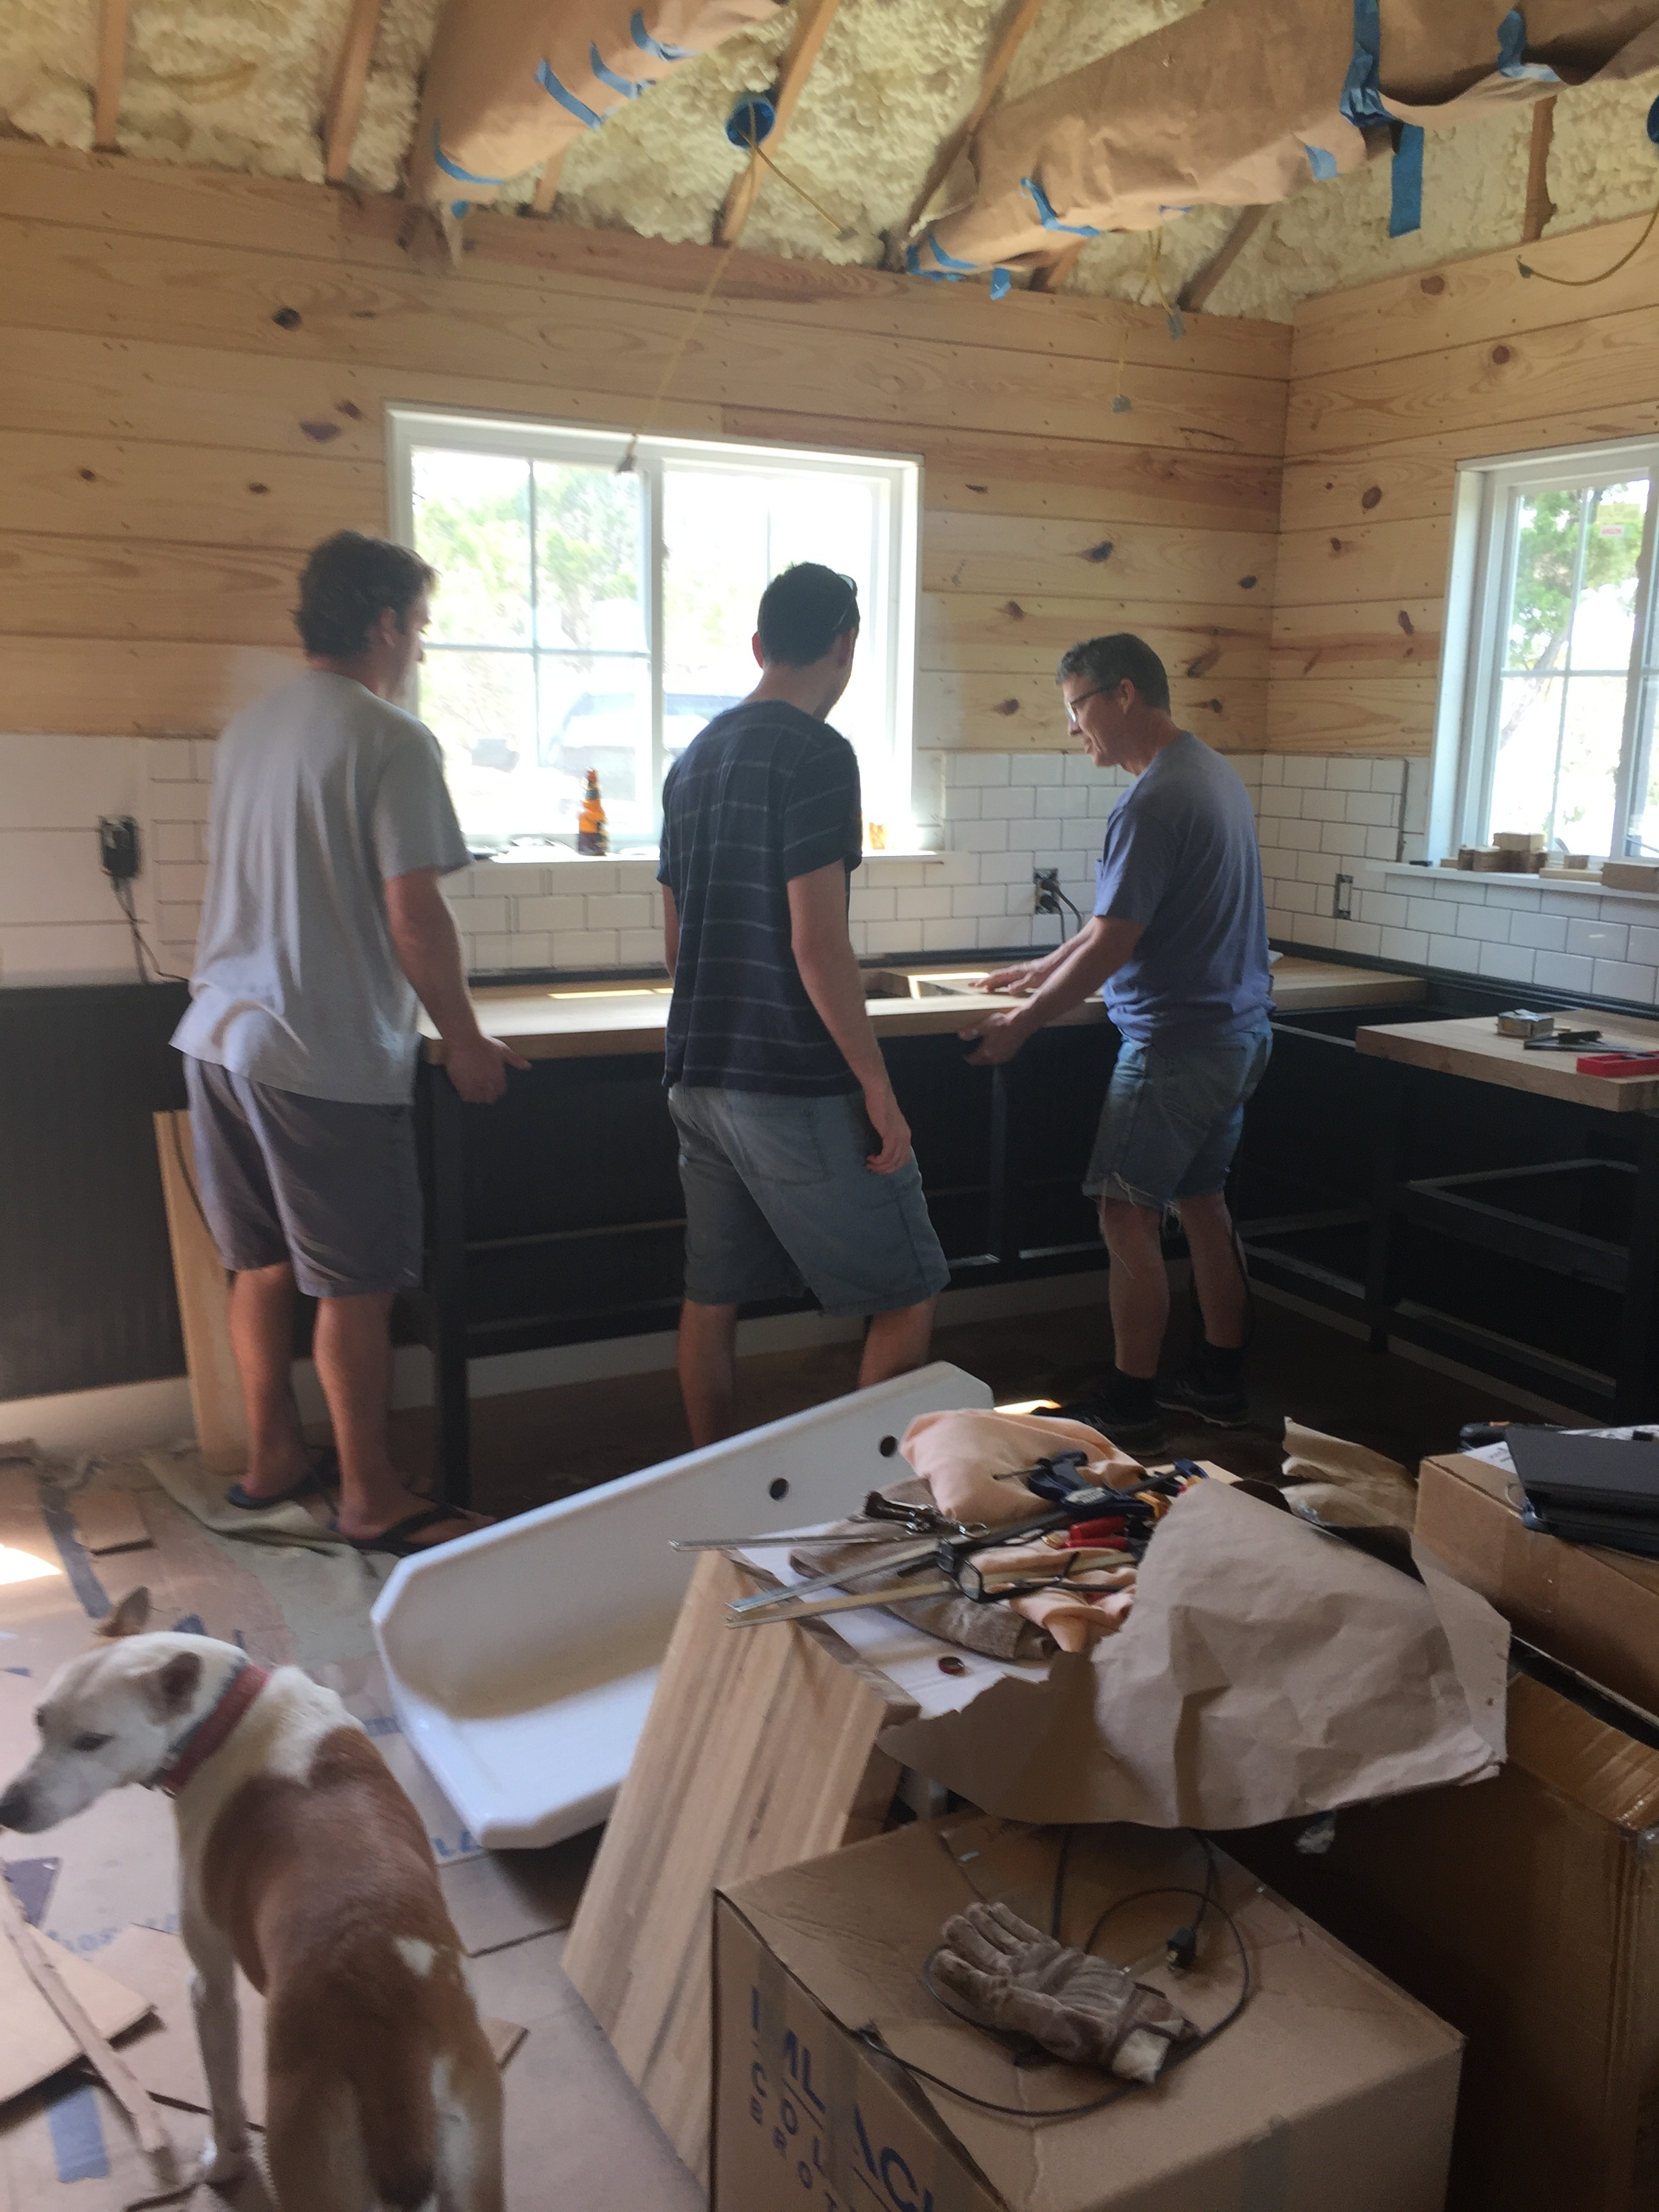 Installing the wood countertops